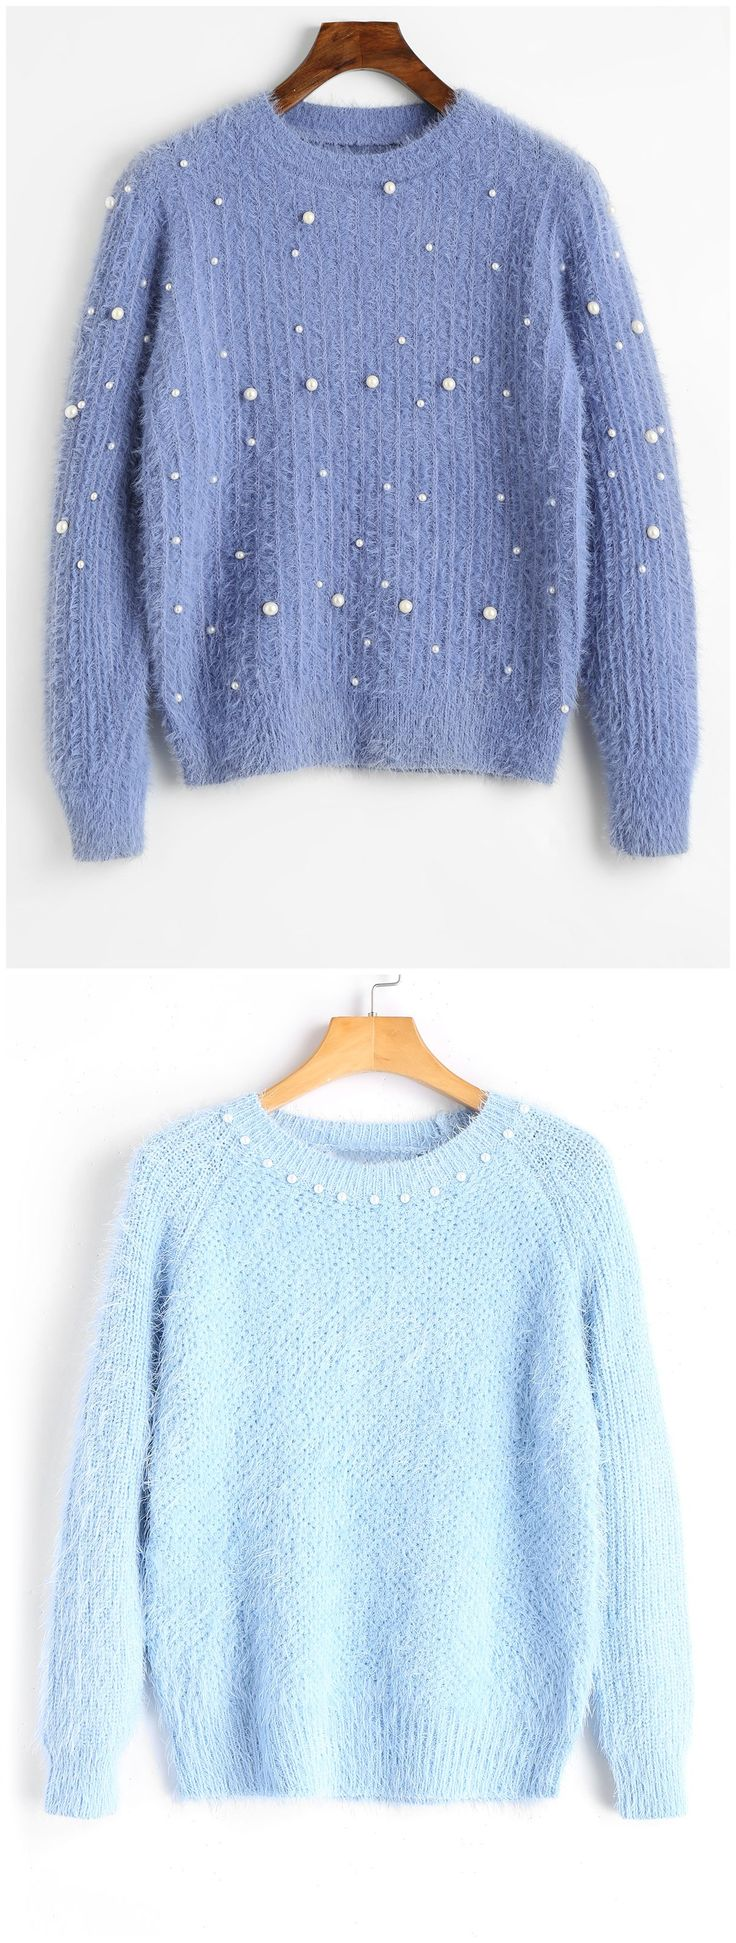 Up to 80% OFF! Crew Neck Beading Sweater. #Zaful #sweater Zaful, zaful outfits, fashion, style, tops, outfits, blouses, sweatshirts, hoodies, cardigan, turtleneck,cashmere,cashmere sweater sweater, cute sweater, floral sweater, cropped hoodies, pearl sweater, knitwear, fall, winter, winter outfits, winter fashion, fall fashion, fall outfits, Christmas, ugly, ugly Christmas, Thanksgiving, gift, Christmas hoodies, New Year Eve, New Year 2017. @zaful Extra 10% OFF Code:ZF2017